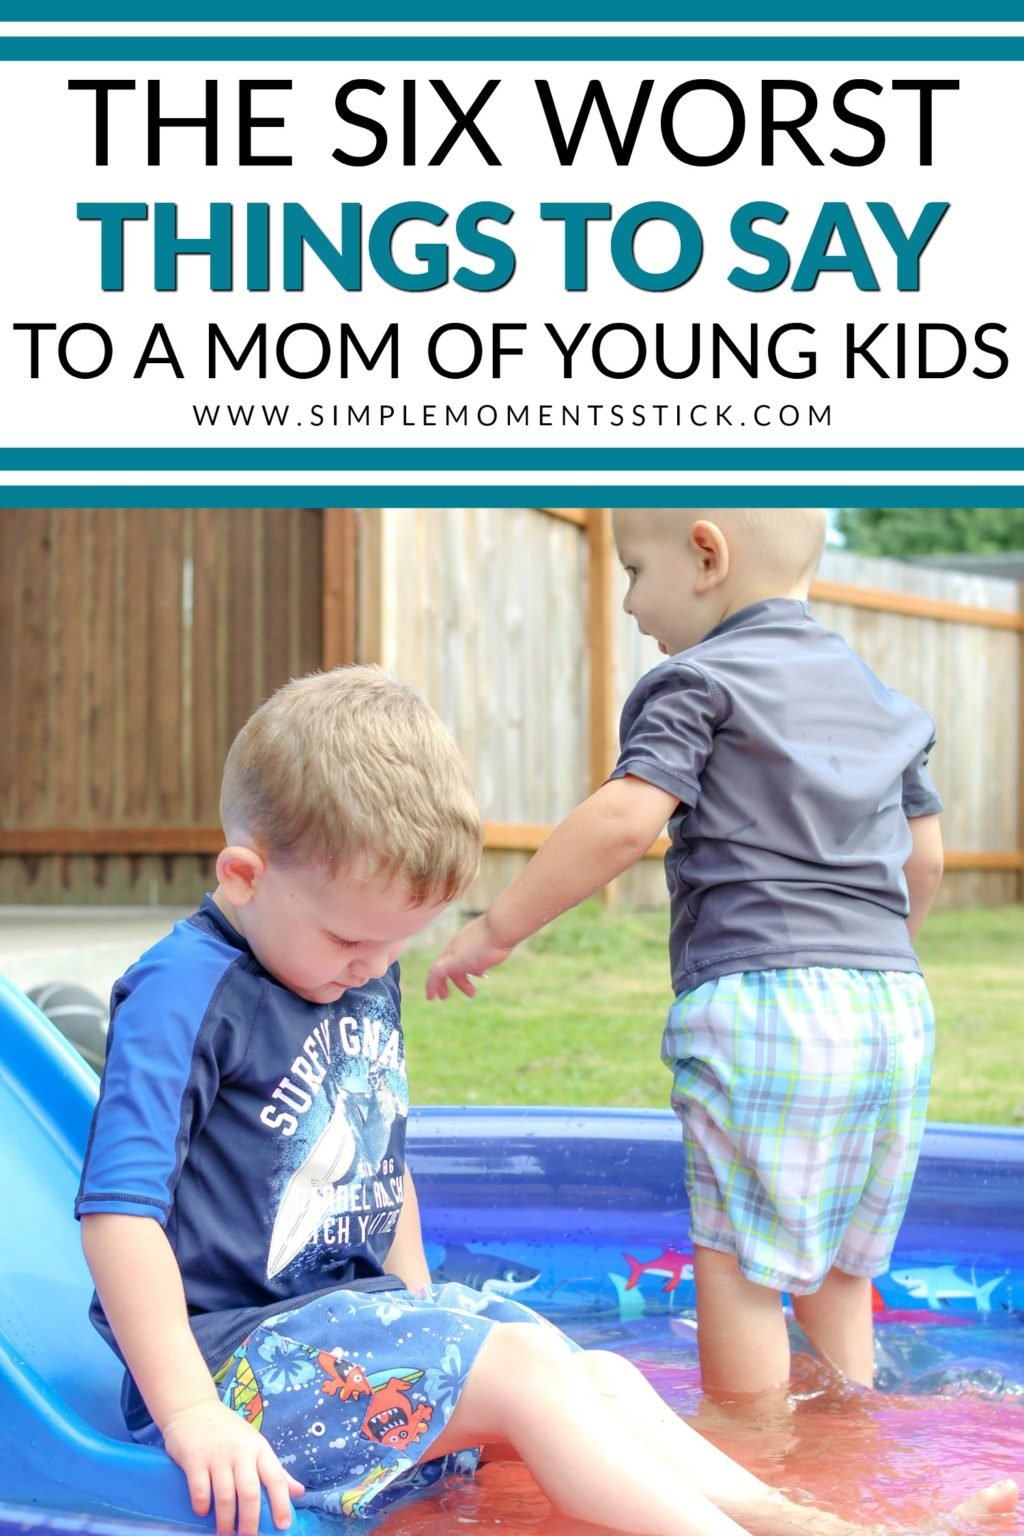 Two young boys in a small kiddie pool with text - The Six Worst Things to Say to a Mom of Young Kids